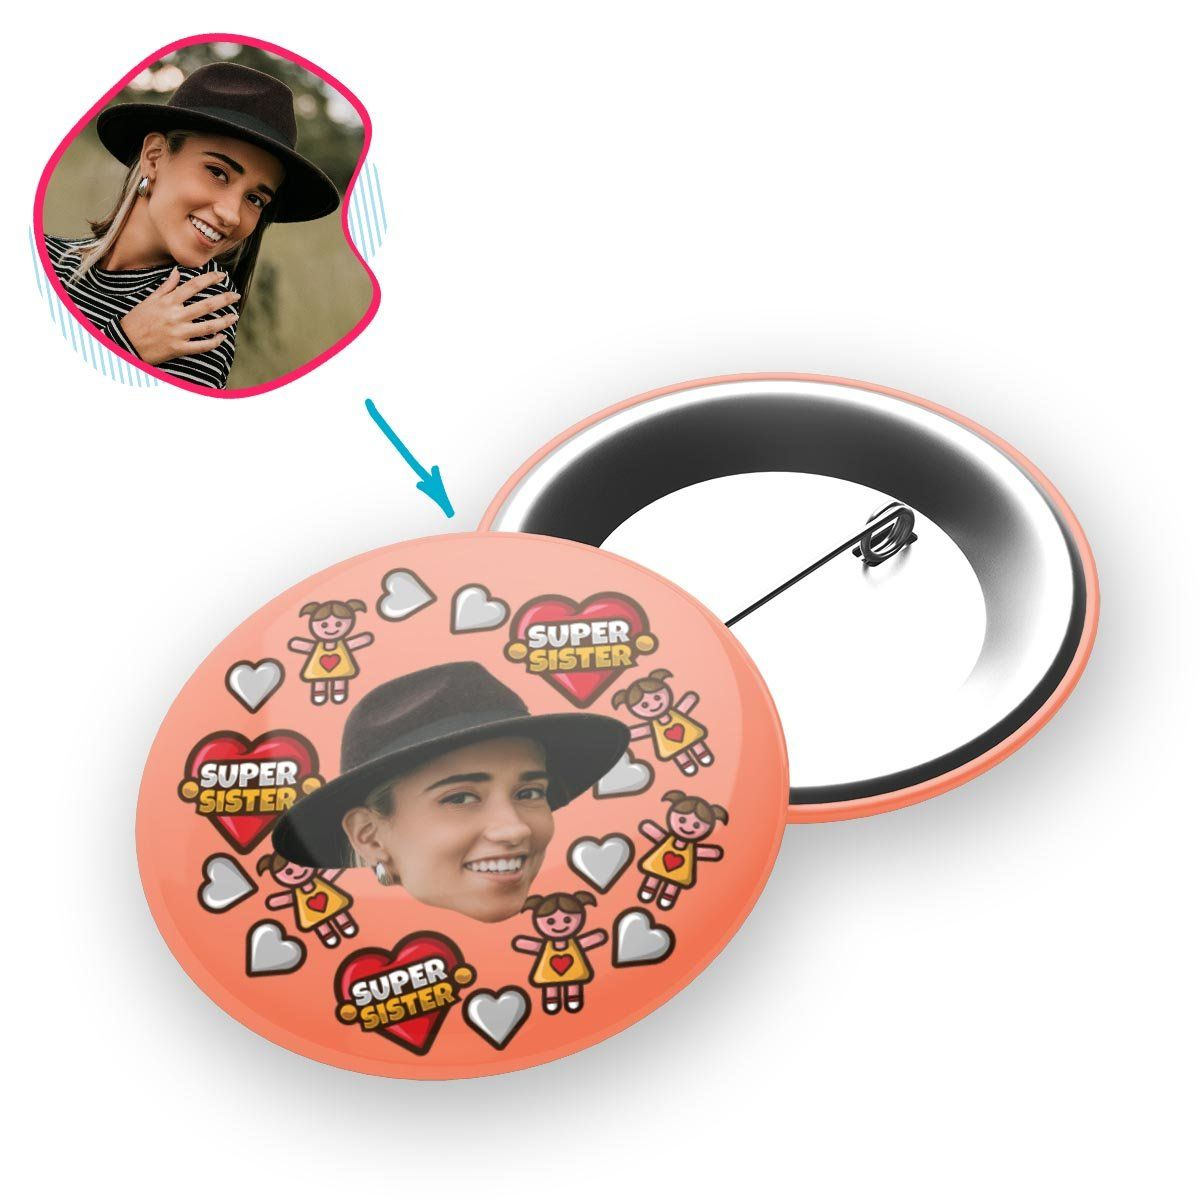 salmon Super Sister pin personalized with photo of face printed on it